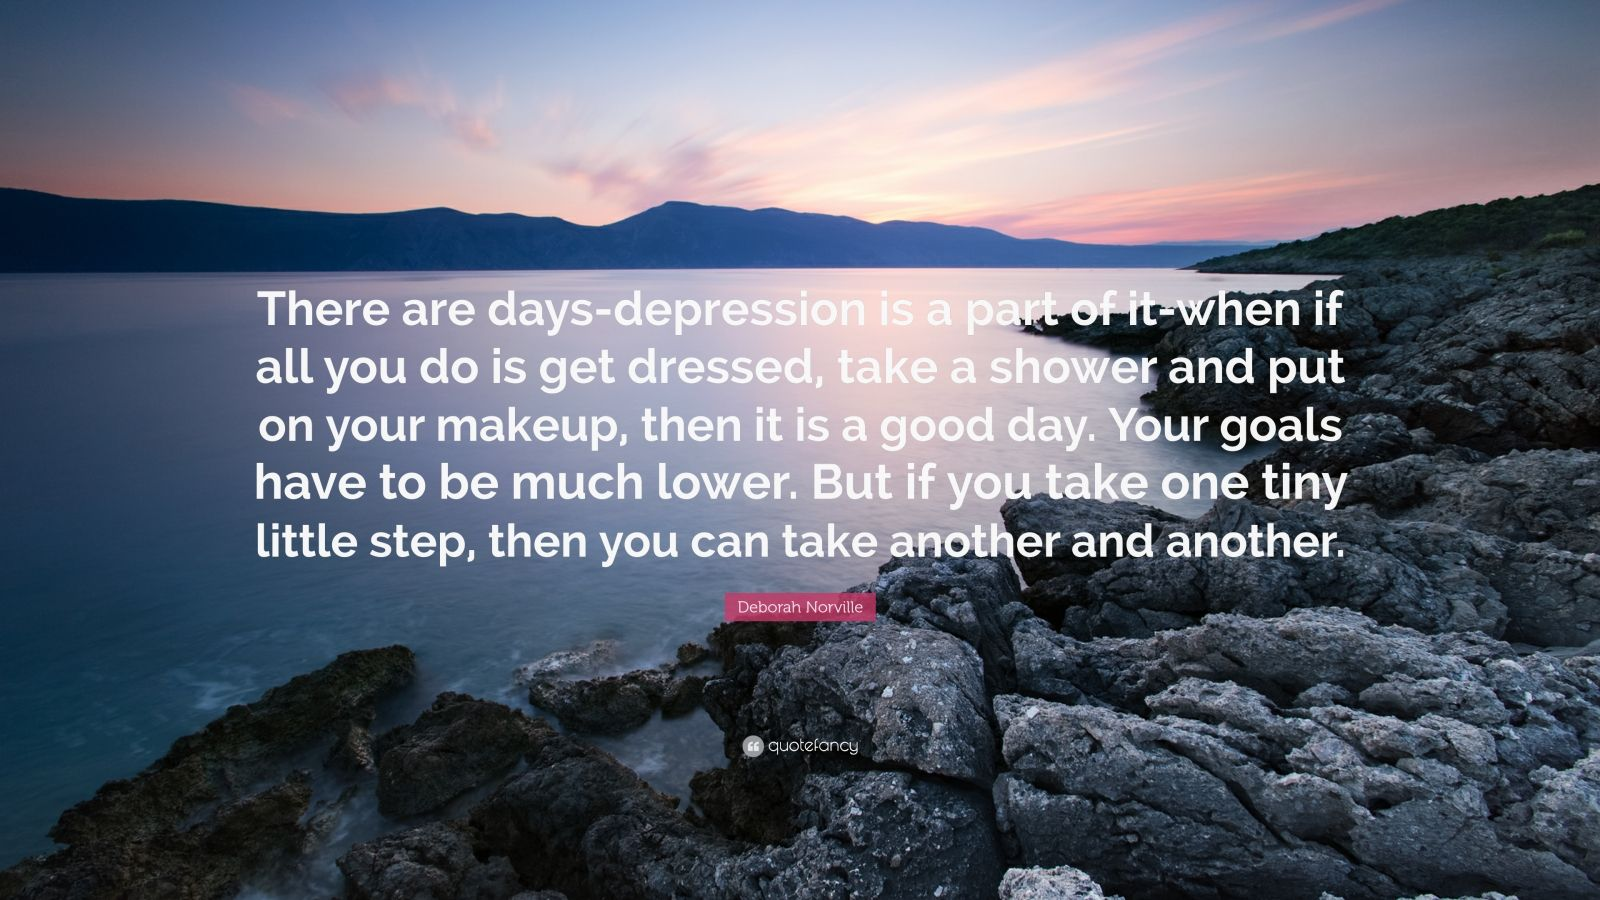 "Deborah Norville Quote: ""There are days-depression is a part of it-when if all you do is get dressed, take a shower and put on your makeup, then it is a good day. Your goals have to be much lower. But if you take one tiny little step, then you can take another and another."""